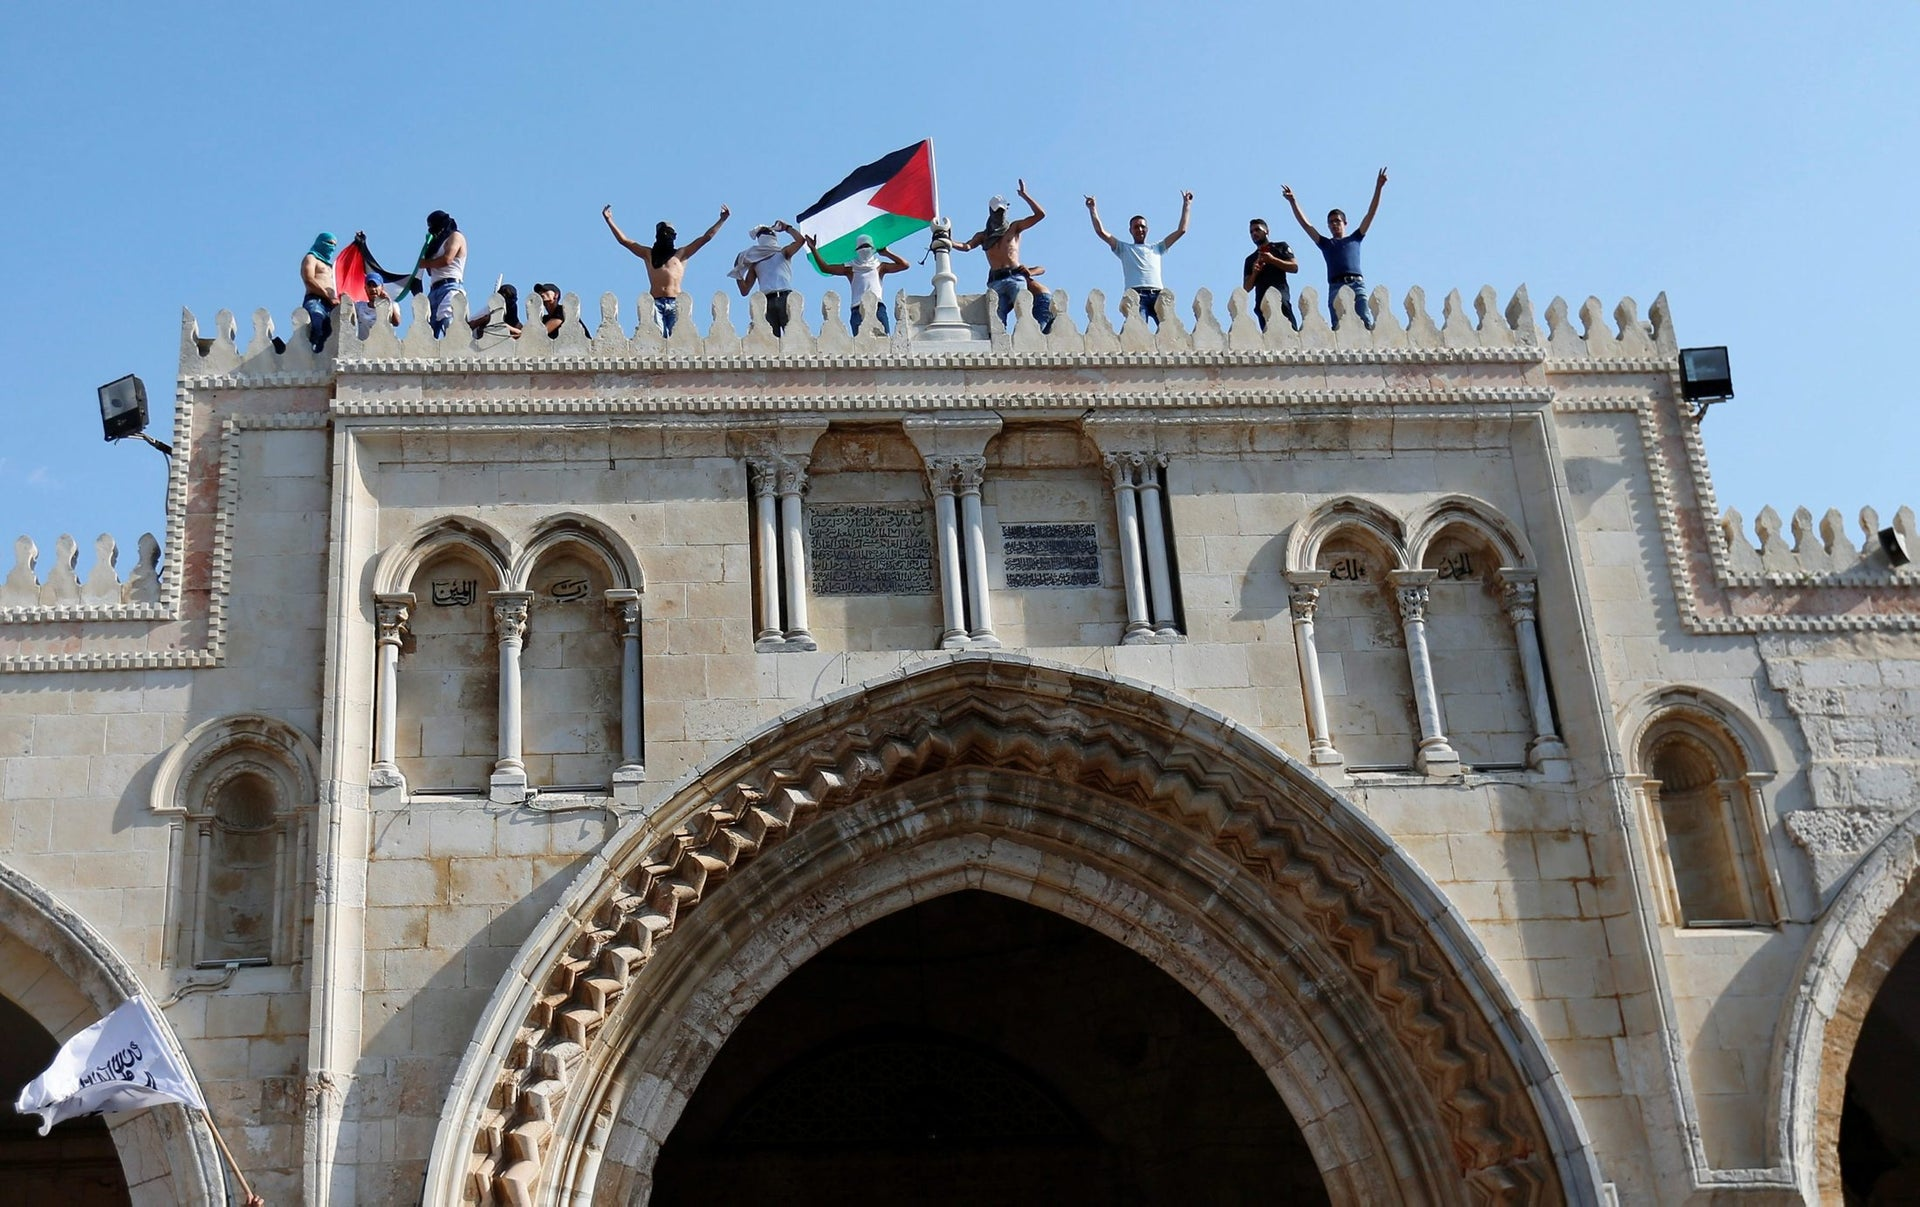 Palestinians gather at the Temple Mount compound after Israel removed all security measures it had installed there, in Jerusalem's Old City July 27, 2017.